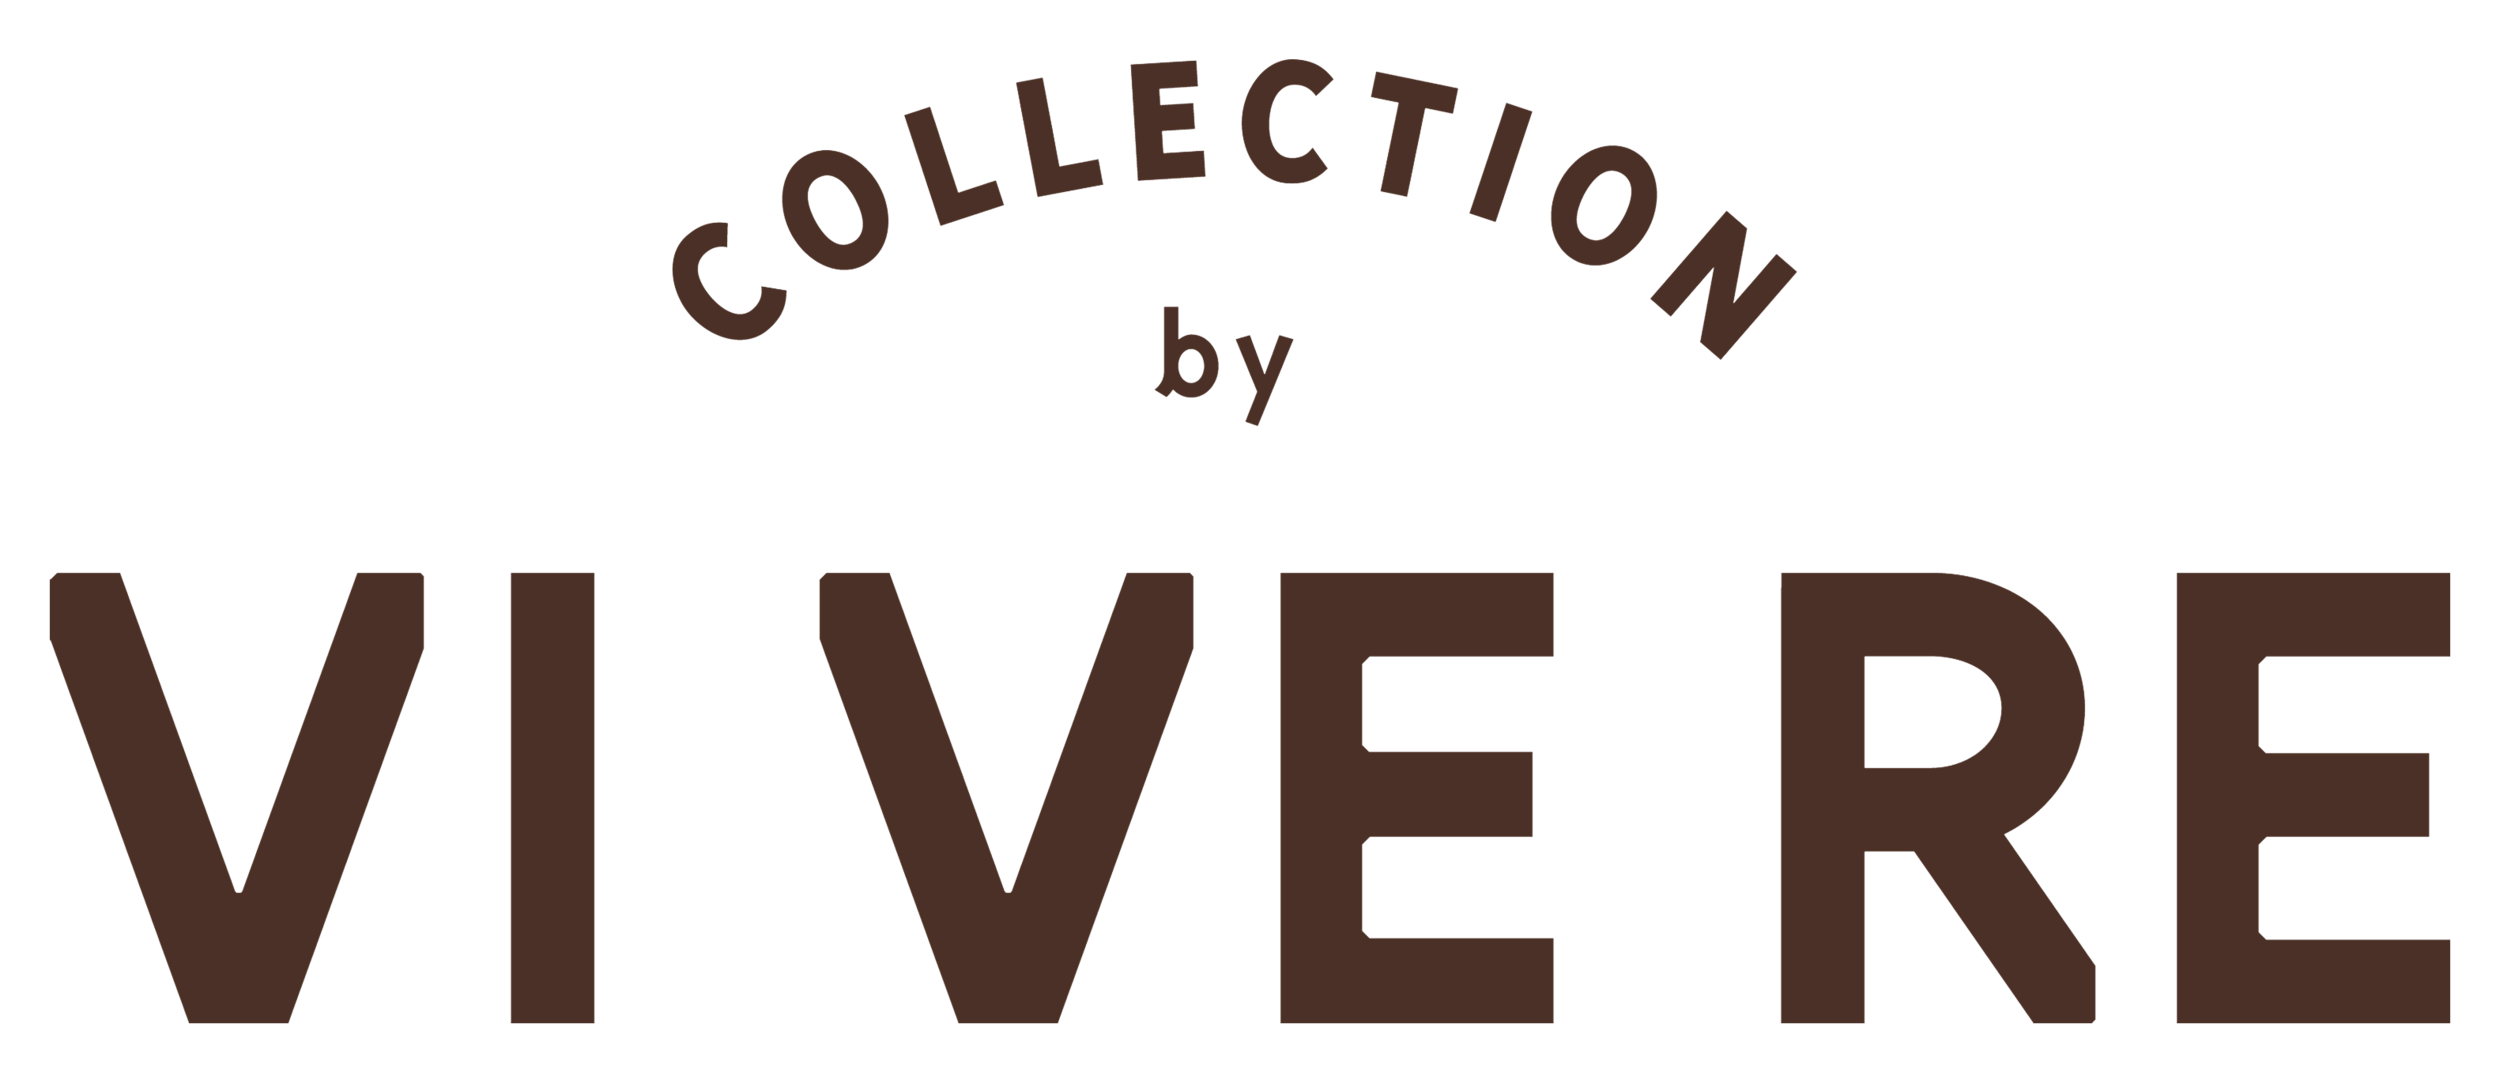 VIVERE collection_new_Brand.png